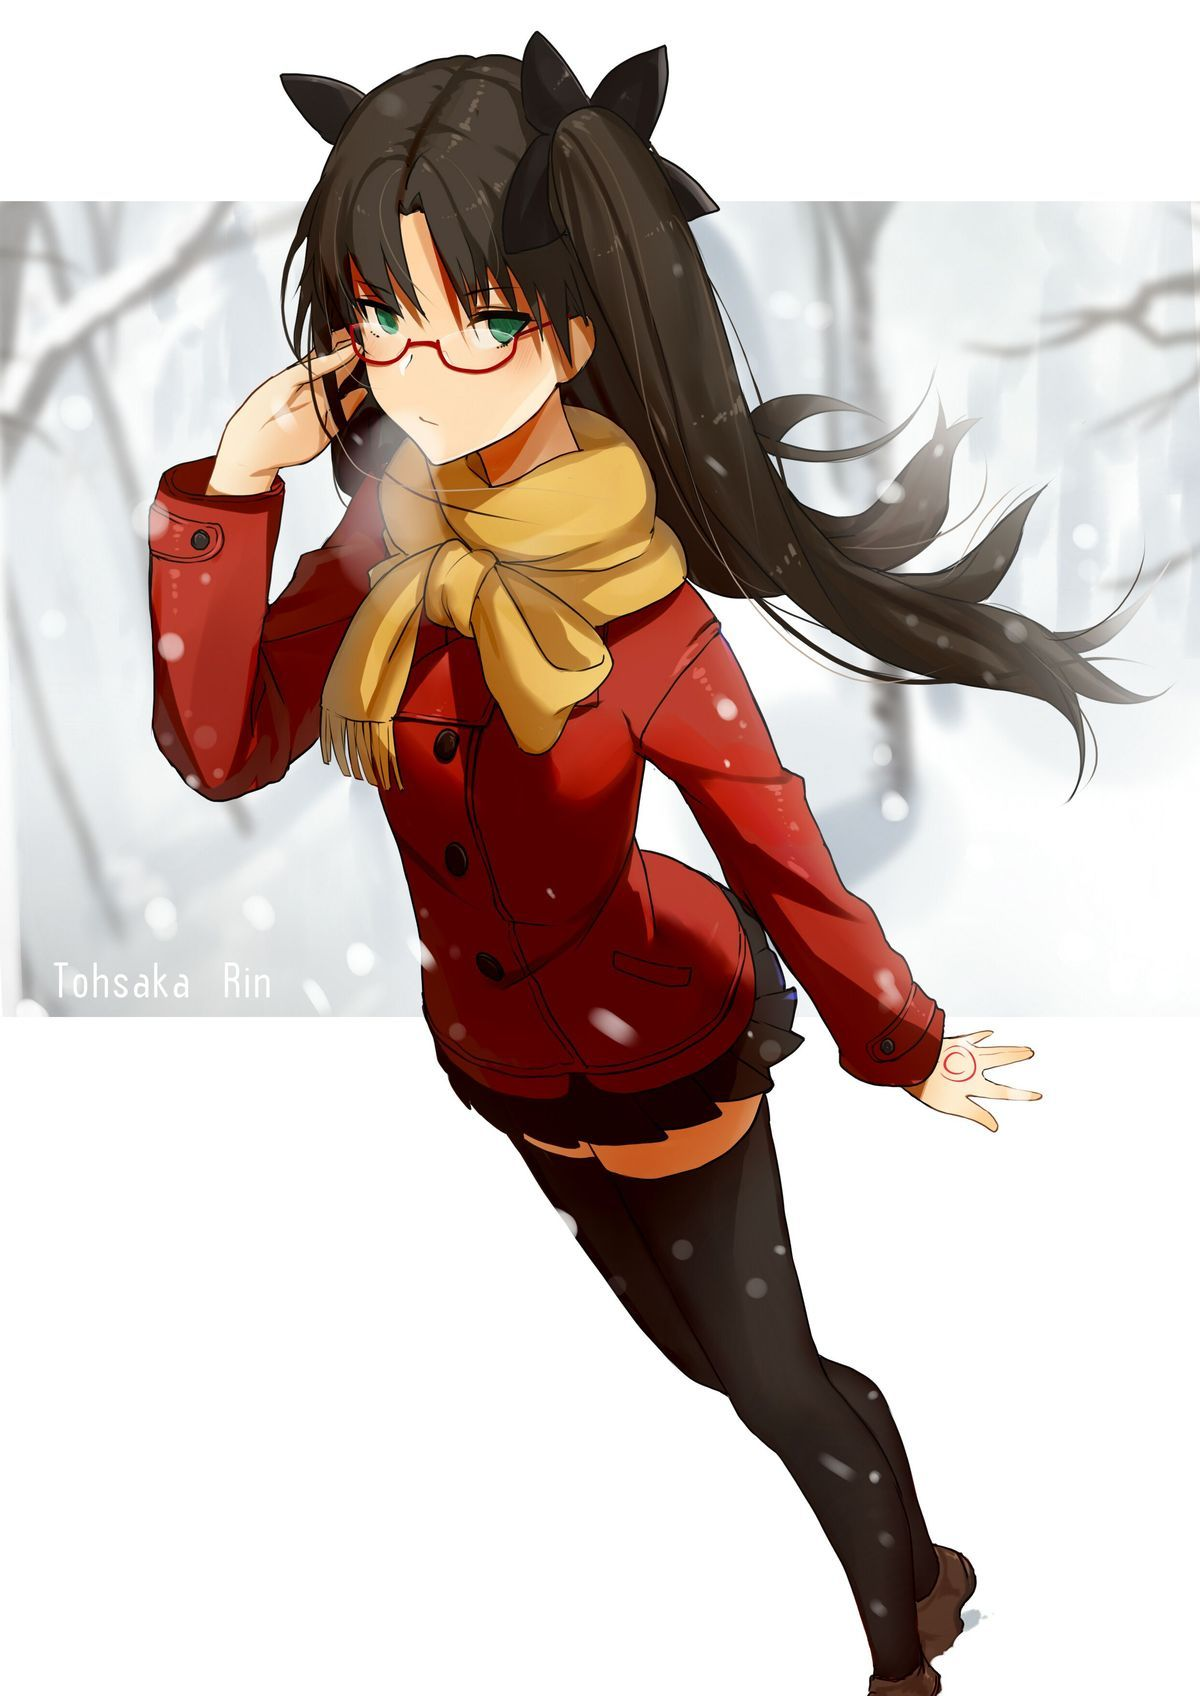 Pin by Paul Ray on Fate Anime, Fate stay night anime